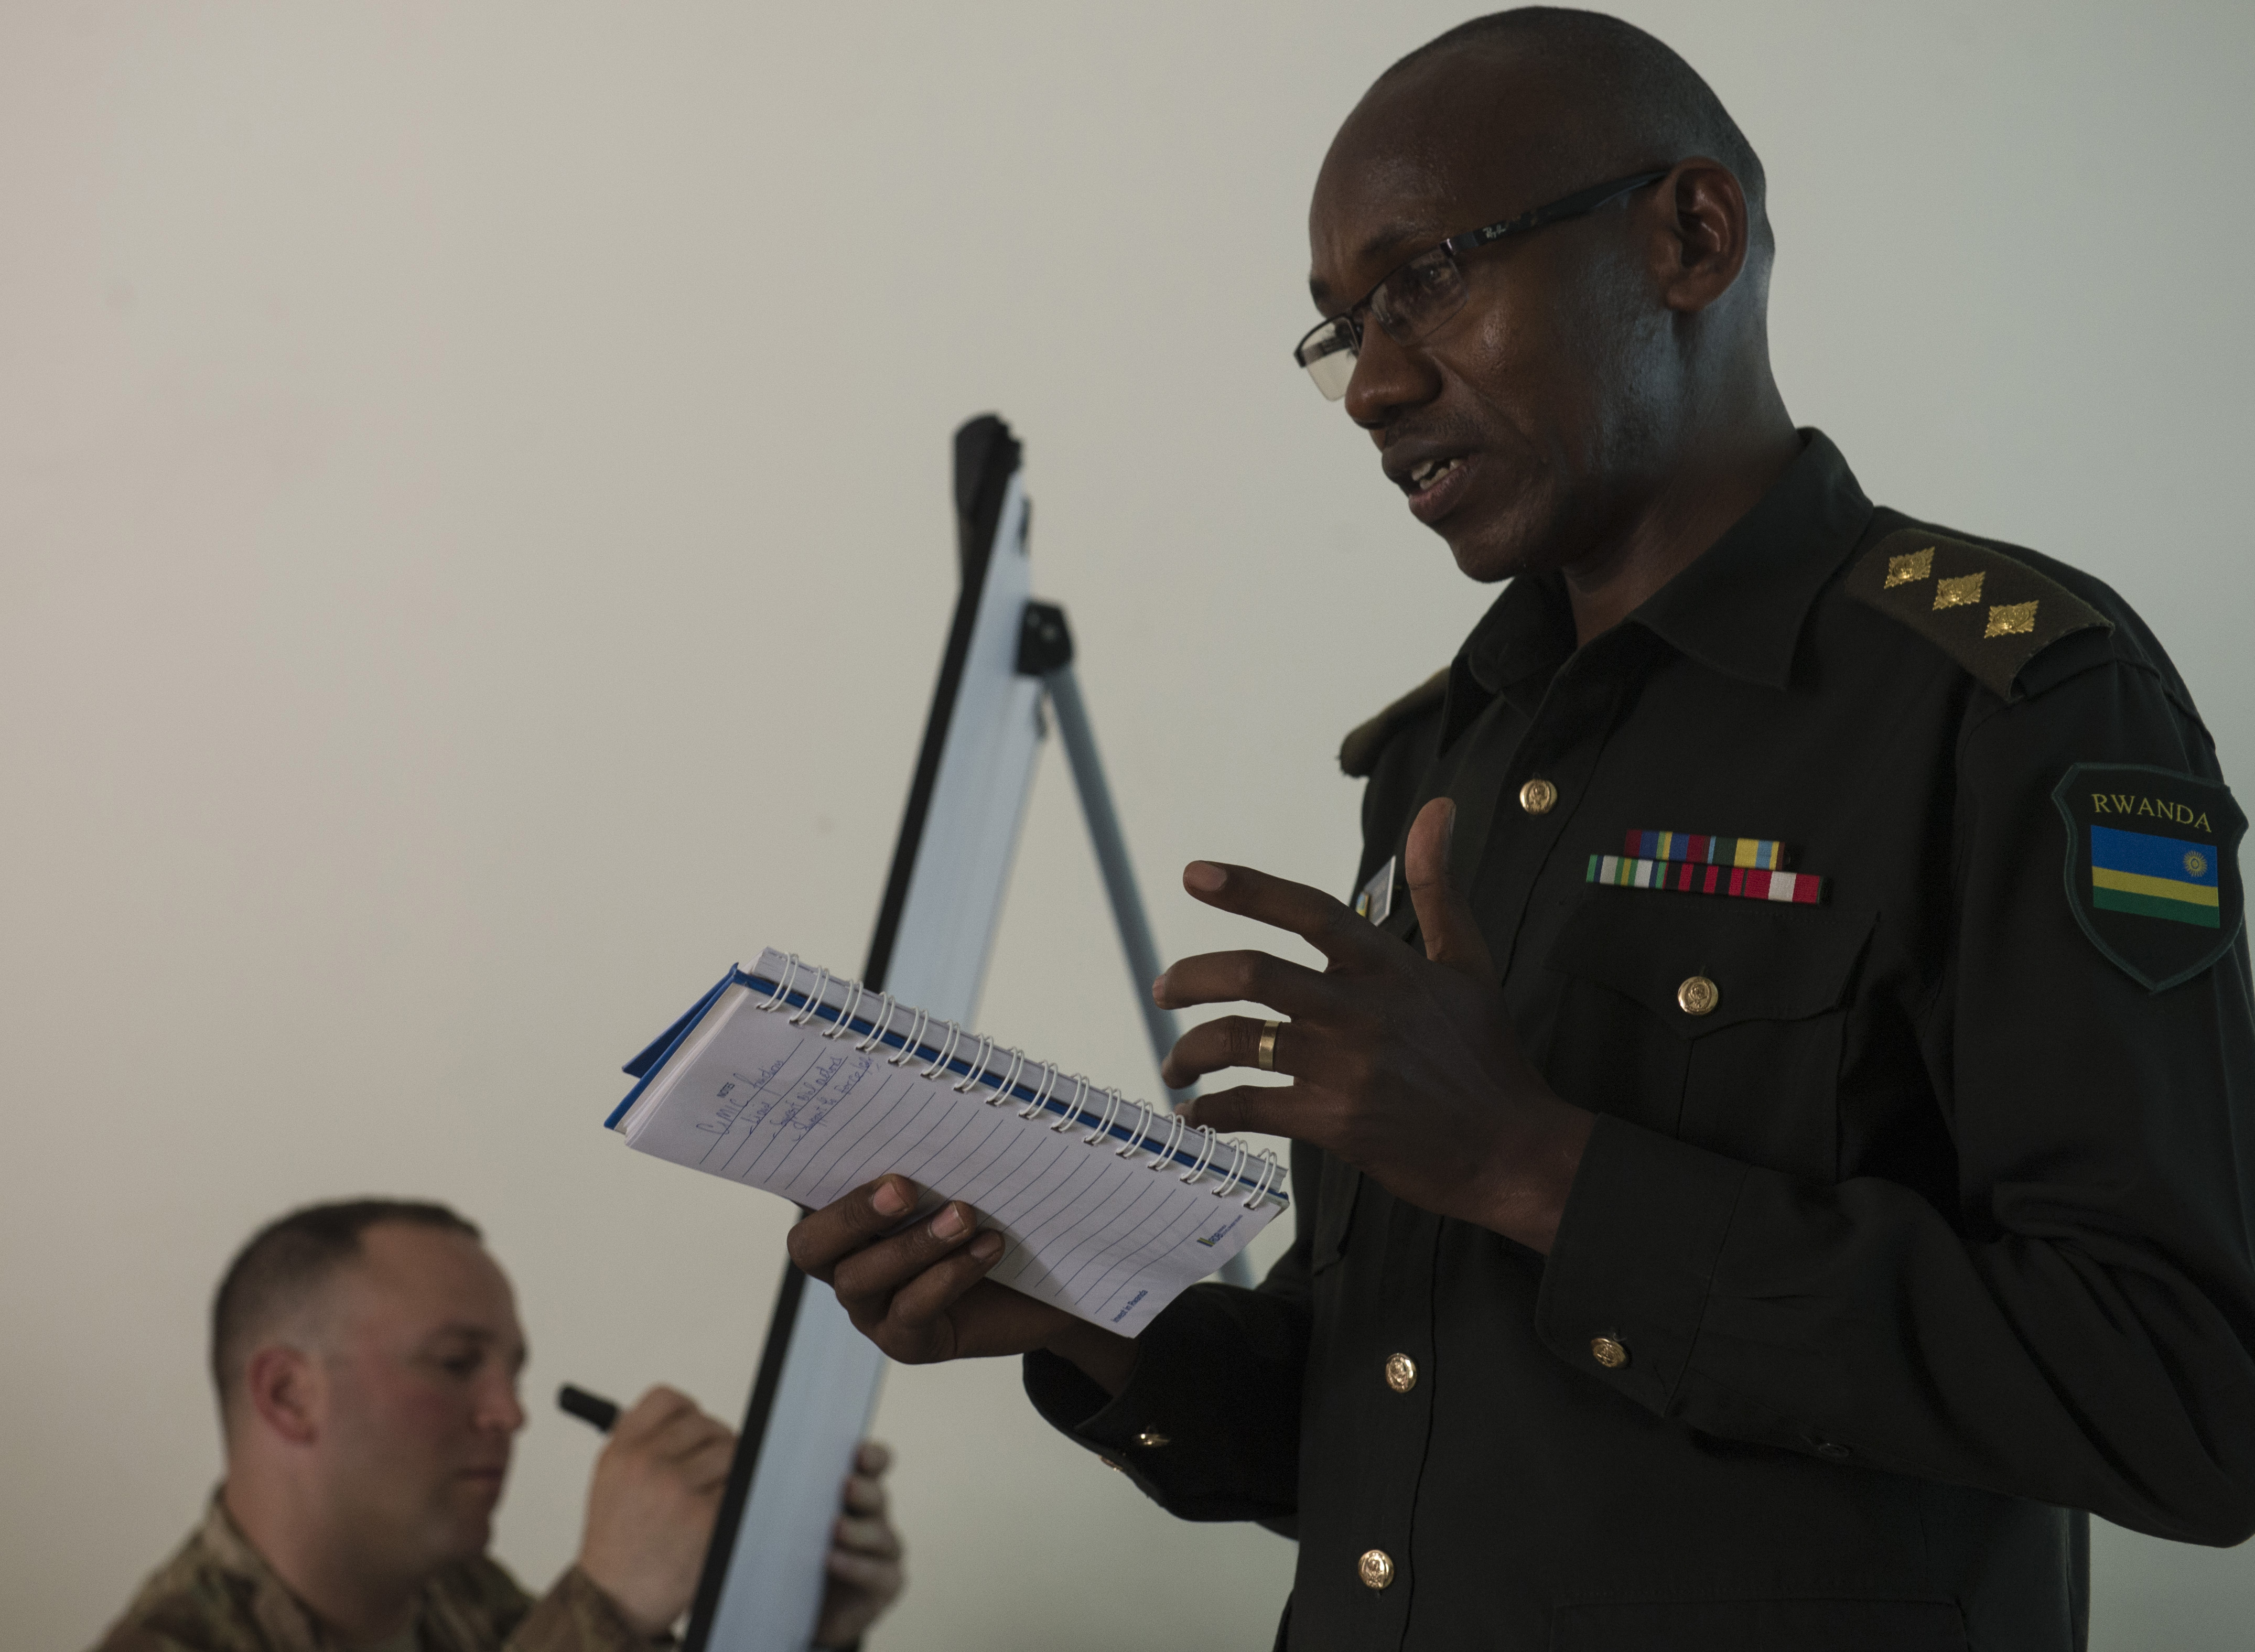 Rwanda Defense Force Army Capt. Edouard Turatsinze, Ministry of Defense Public Relations and Communications officer, reads from a list of essential tasks for Civil-Military Cooperation officers Feb. 3, 2016, at Rwanda Defense Force headquarters, Kigali, Rwanda. During conversations and breakout sessions the civil affairs and RDF explored the use of essential tasks and supporting tasks as means of identifying needed skills for proficient CIMIC personnel prior to peacekeeping and regional security organization deployments. (U.S. Air Force photo by Senior Airman Peter Thompson)